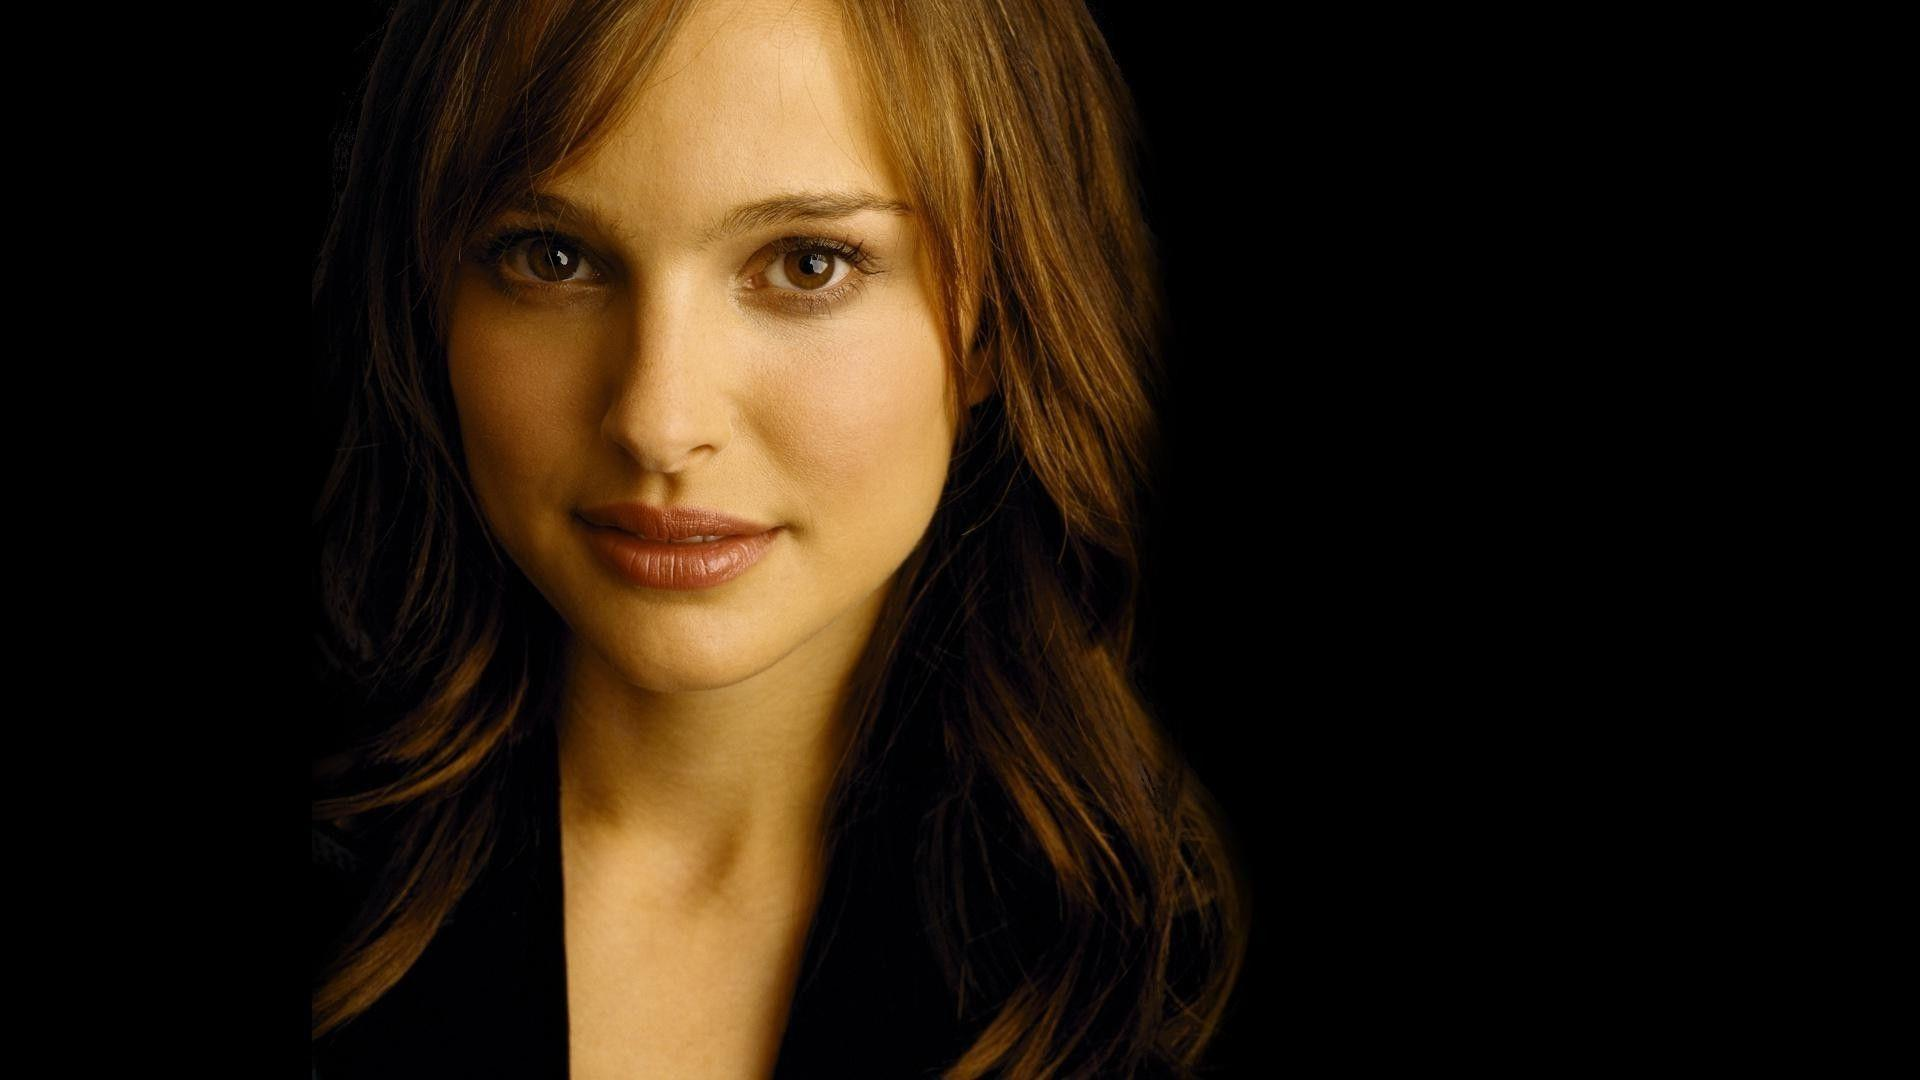 Natalie Portman Wallpaper 1366x768 HD Wallpapers Pictures | HD ...